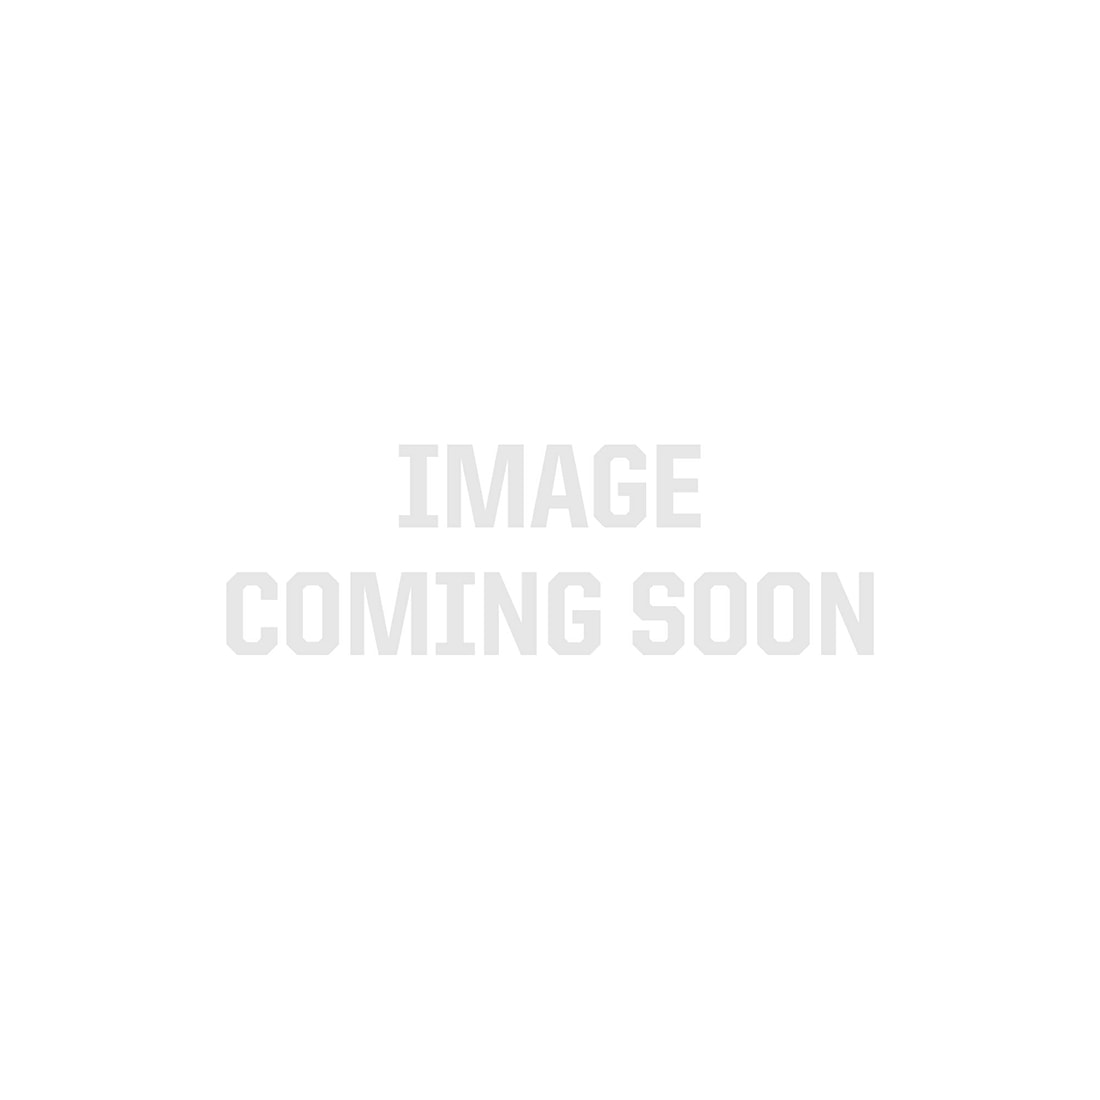 5mm Conical Wide Angle Color-Rite 50 LED Christmas Light String, Green Wire, 17.3 feet long, 4 in. spacing (Multi-Color: Red, Green, Blue, Yellow, Purple)